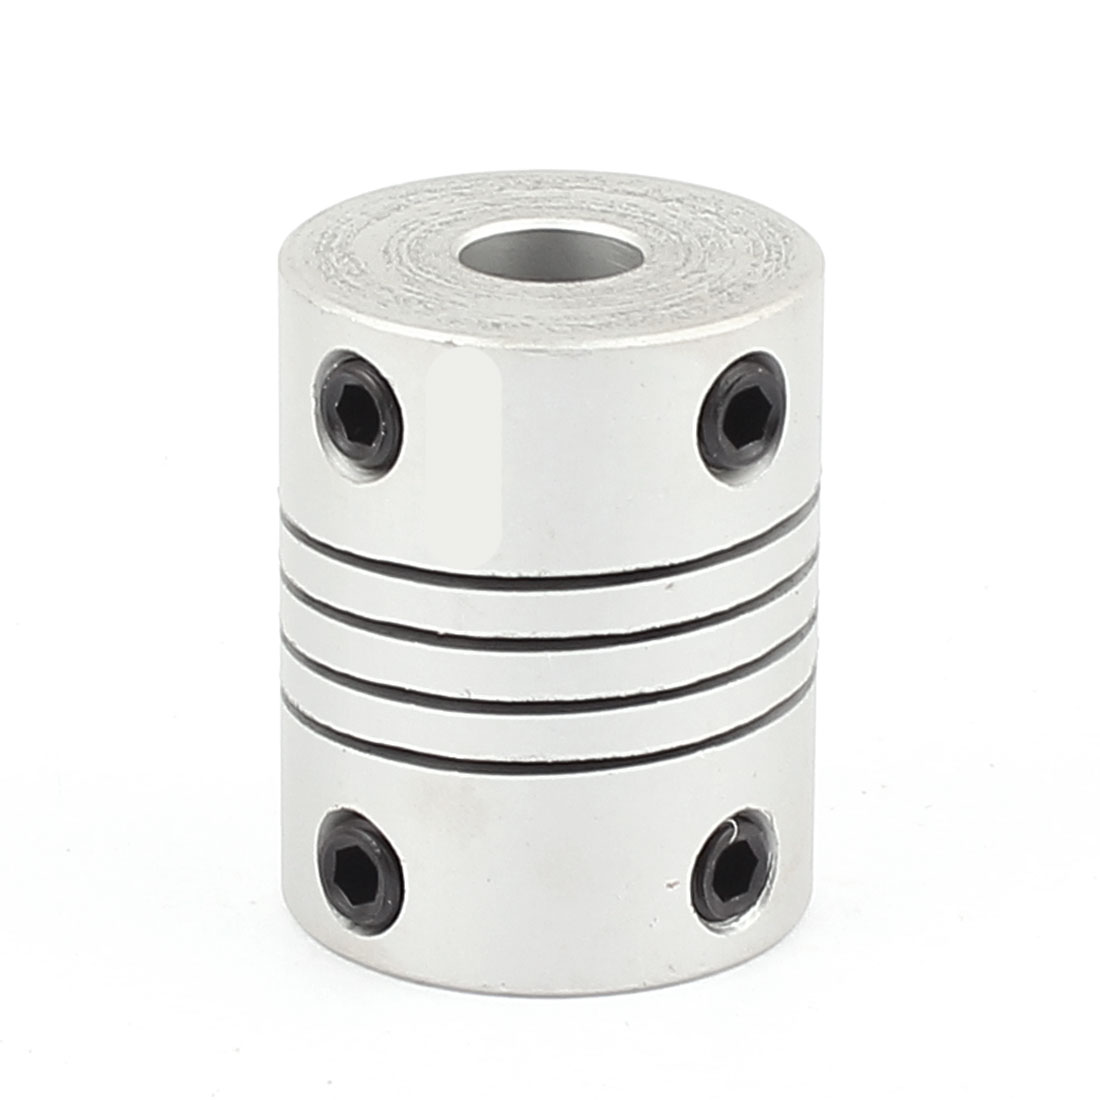 Motor Shaft Dia 8mm to 8mm Joint Helical Beam Coupler Coupling 24mm x 30mm